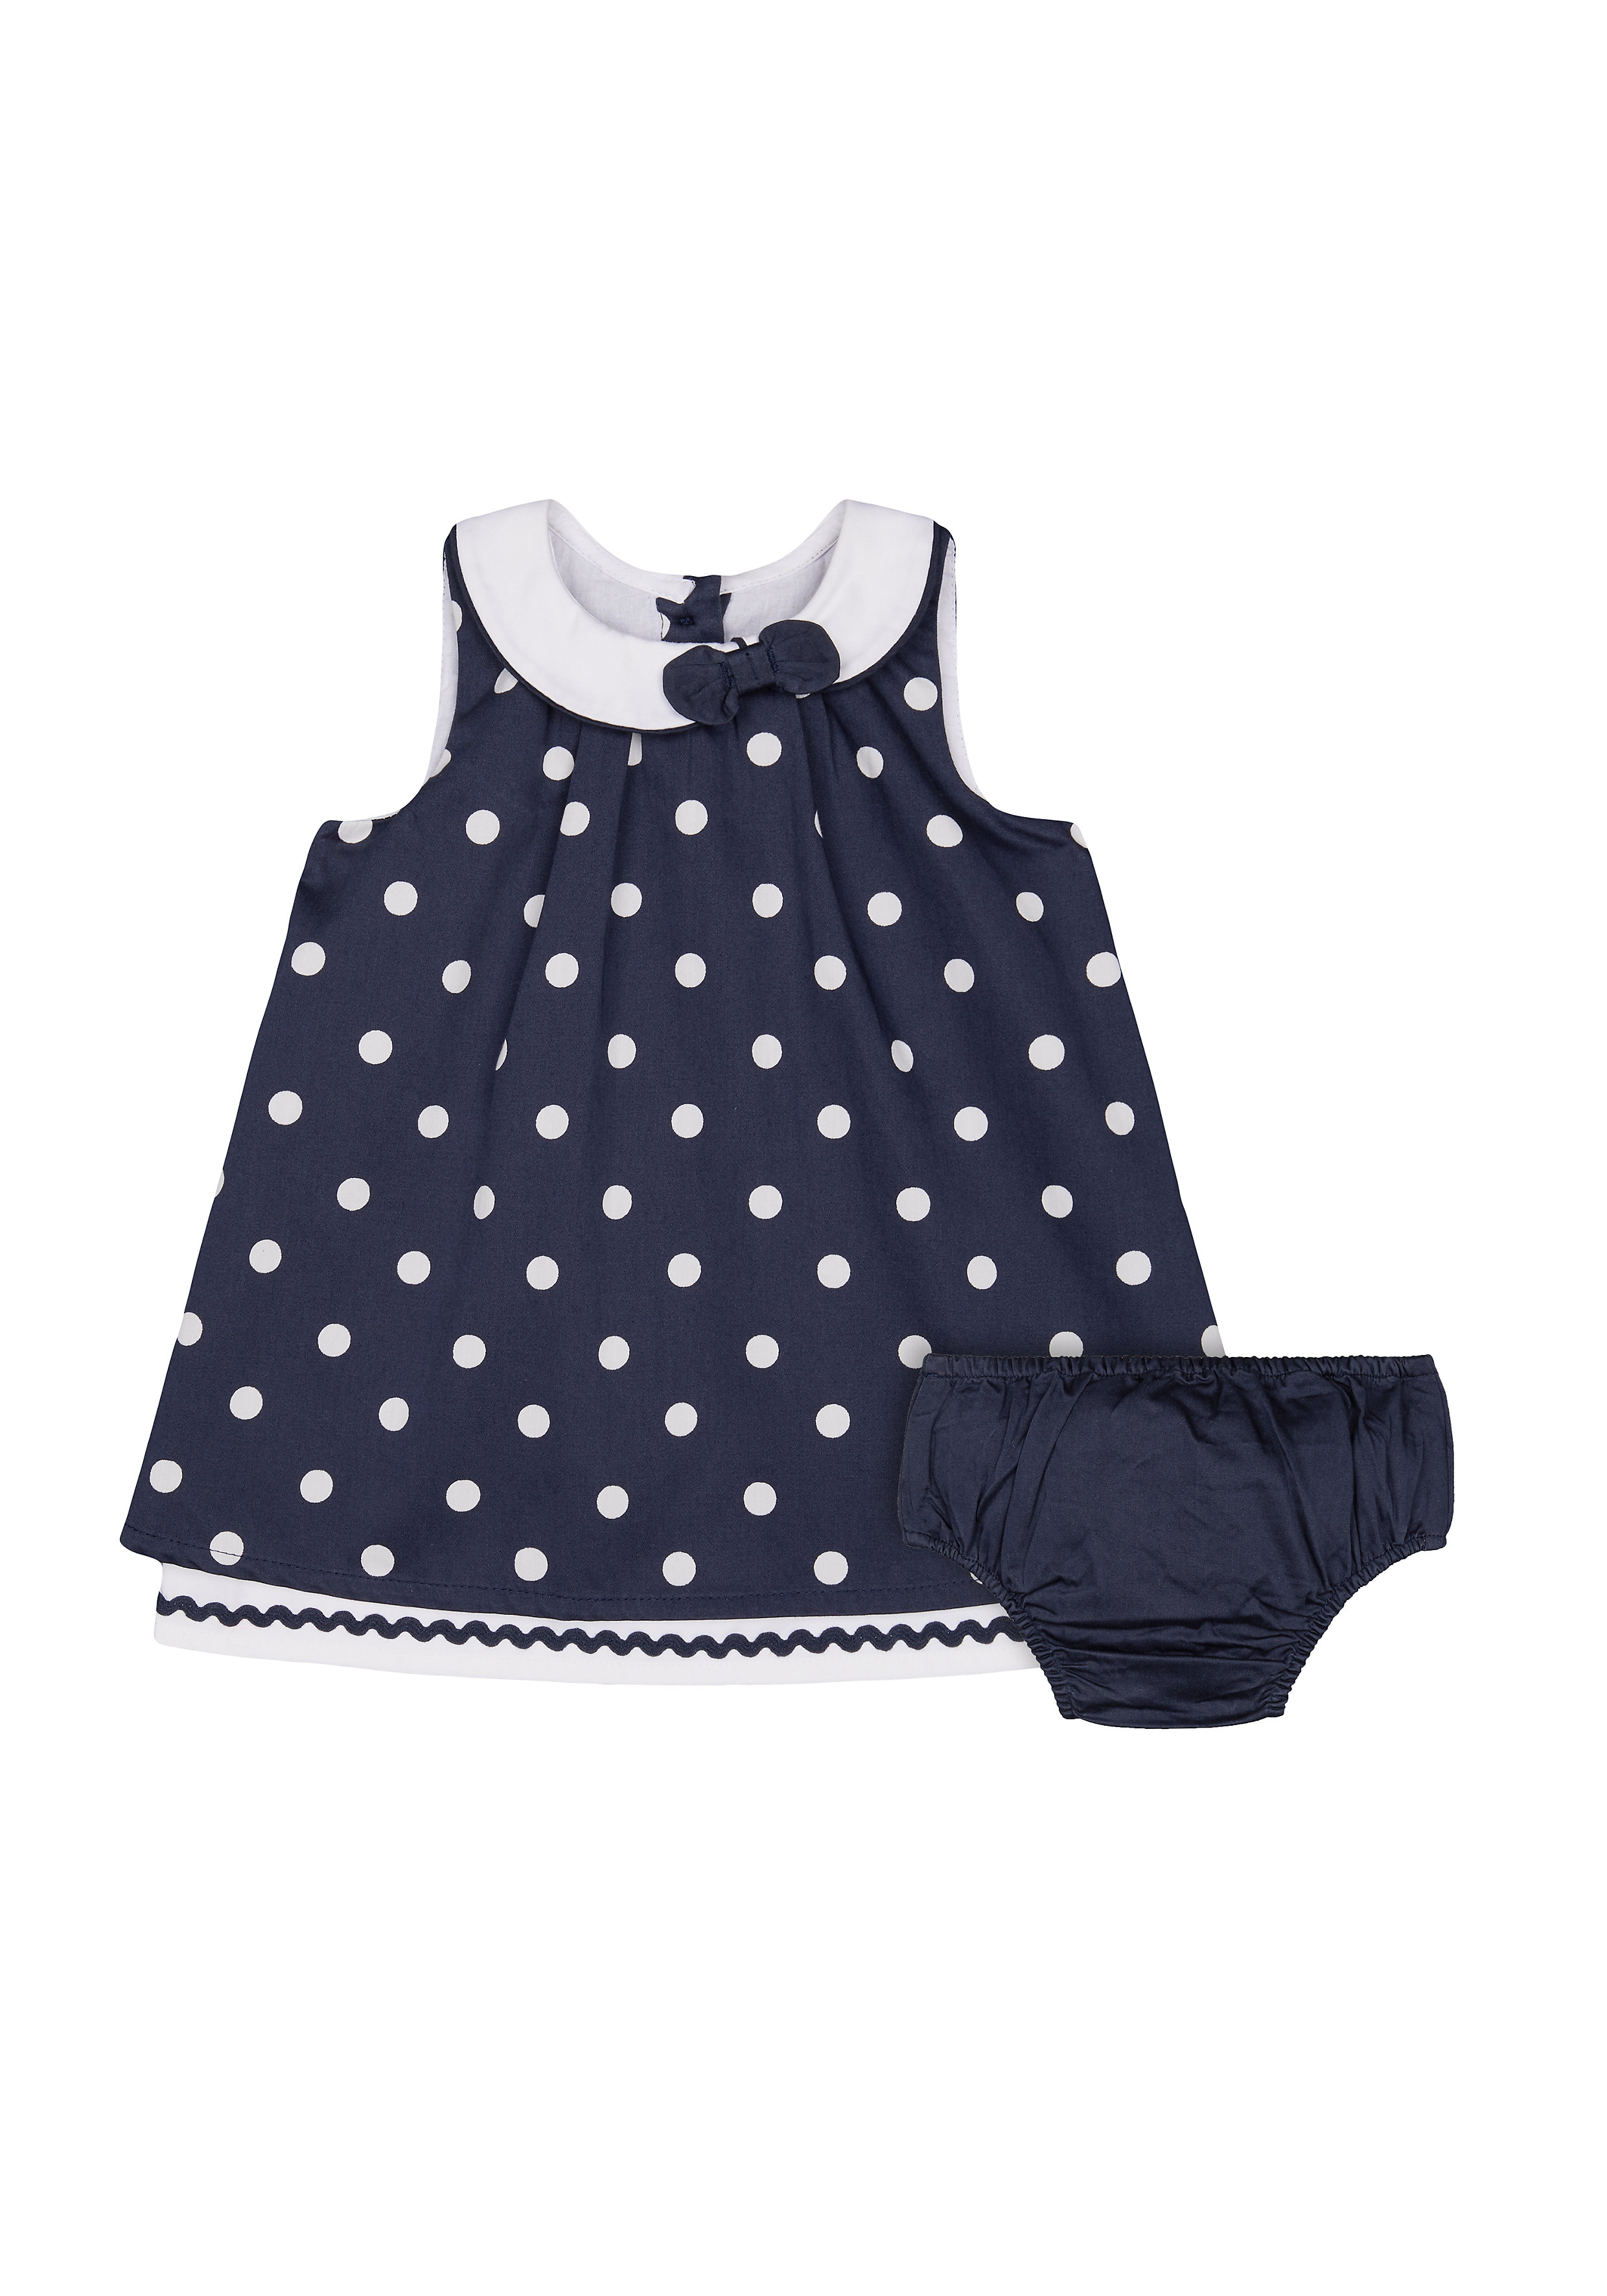 Mothercare | Girls Sleeveless Dress And Knickers Set Bow And Lace Details - Navy